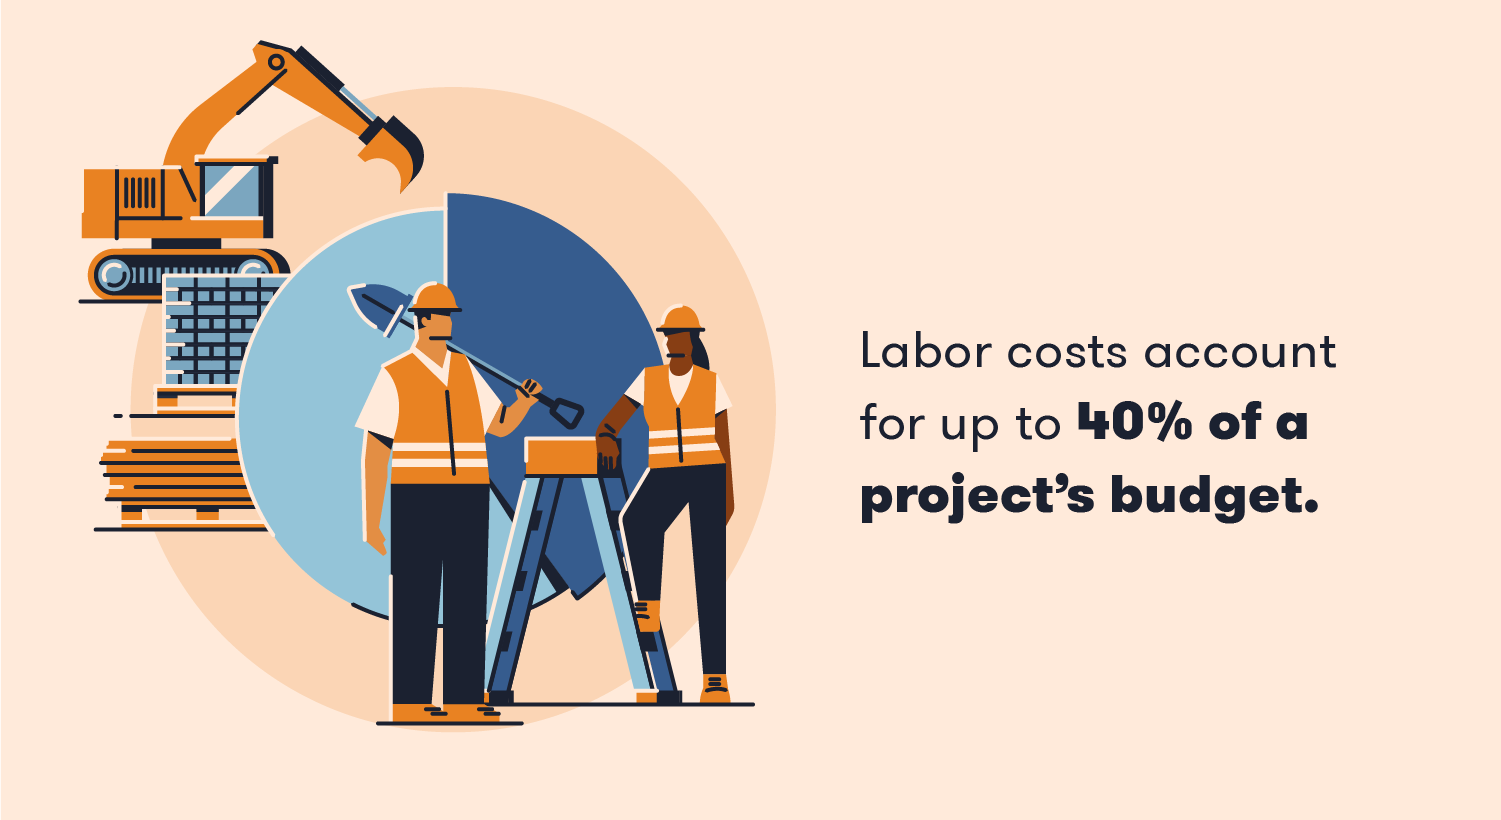 Labor costs account for up to 40% of a project's budget.